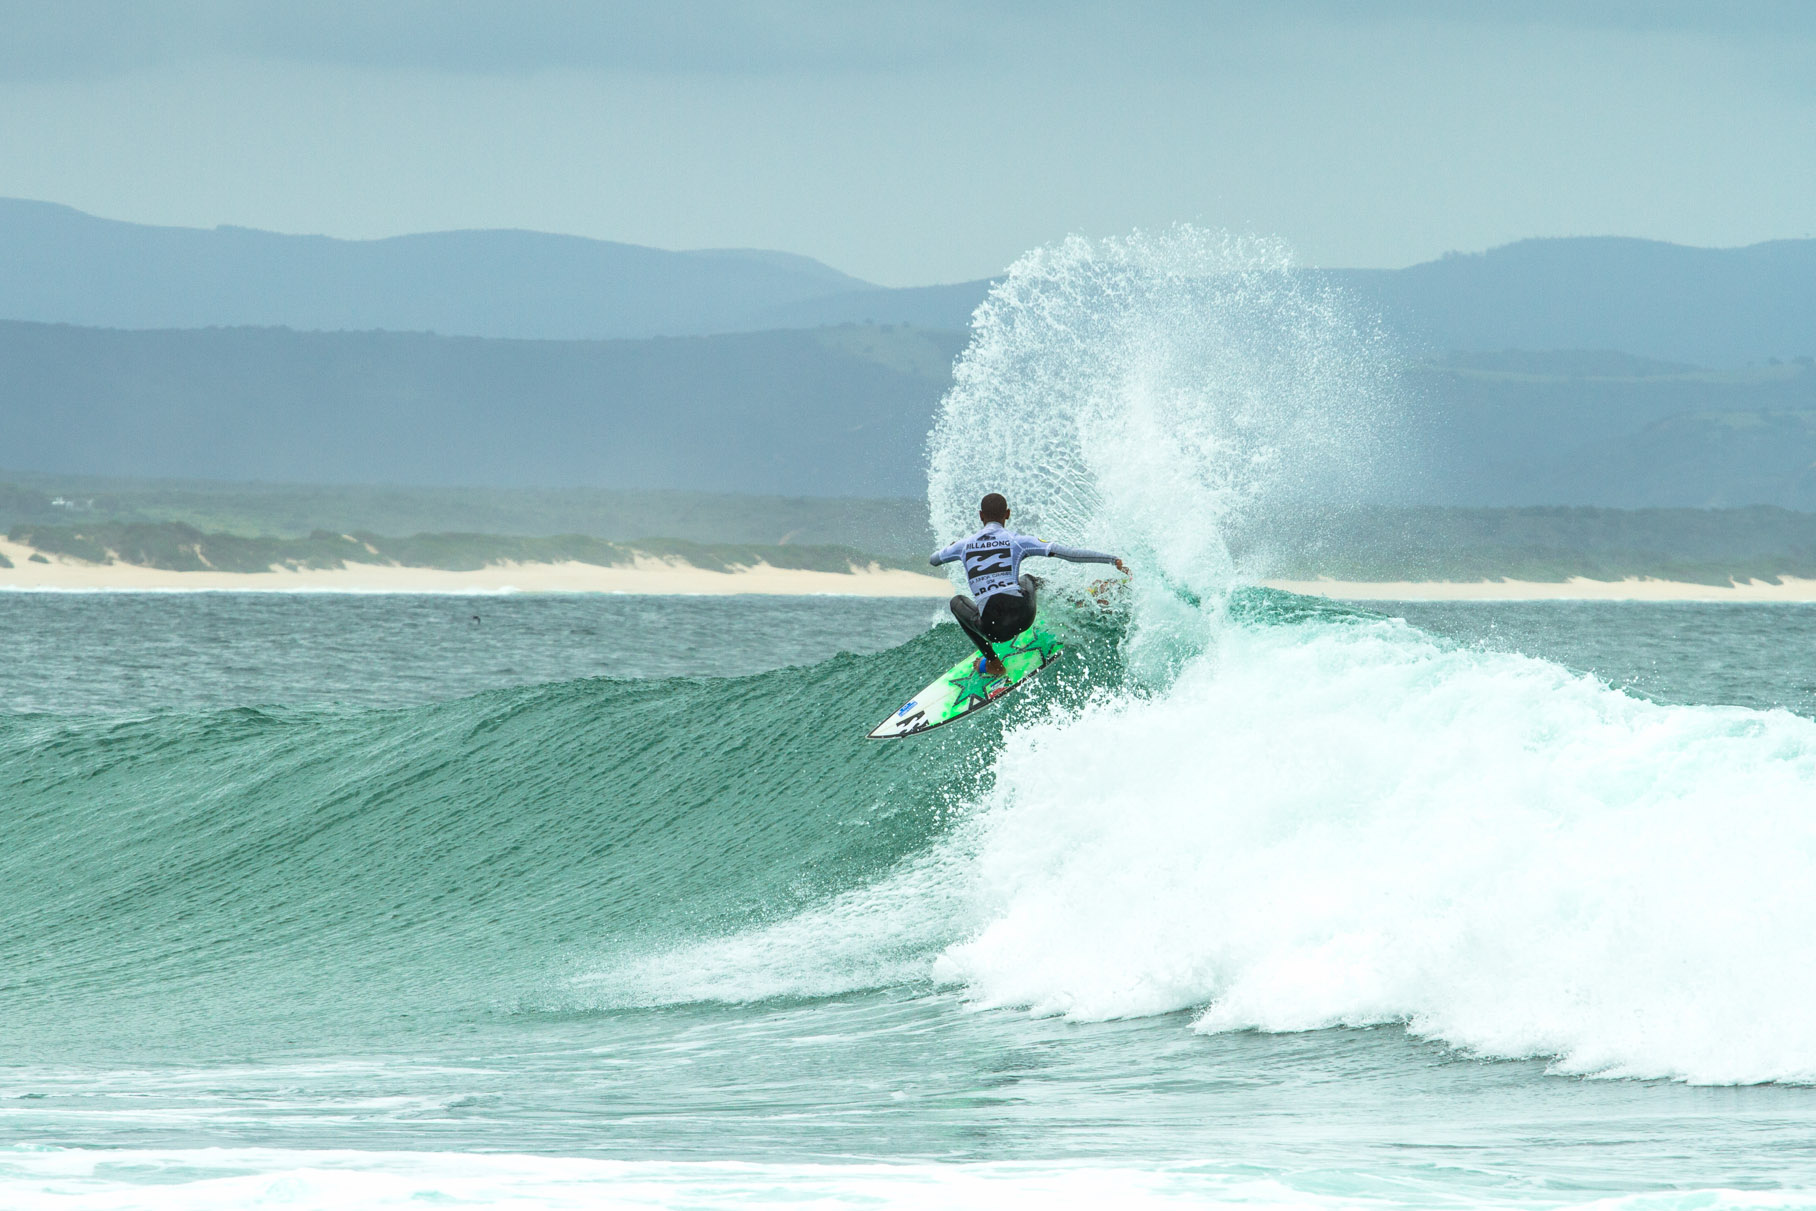 Surfing at it best at the BOS Cape Crown in Cape Town